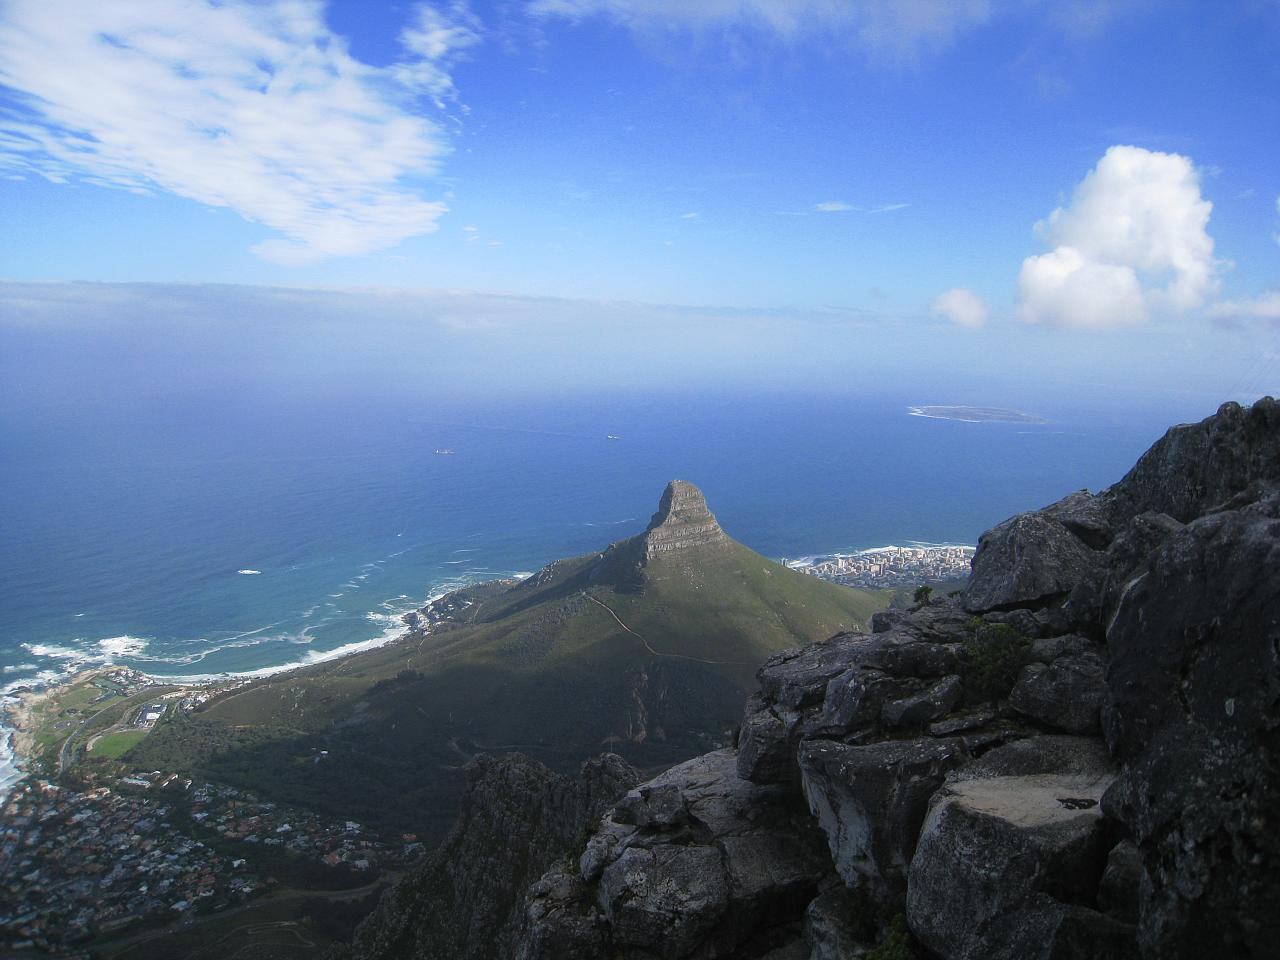 Looking down on Lion's Head from atop the taller Table Mountain